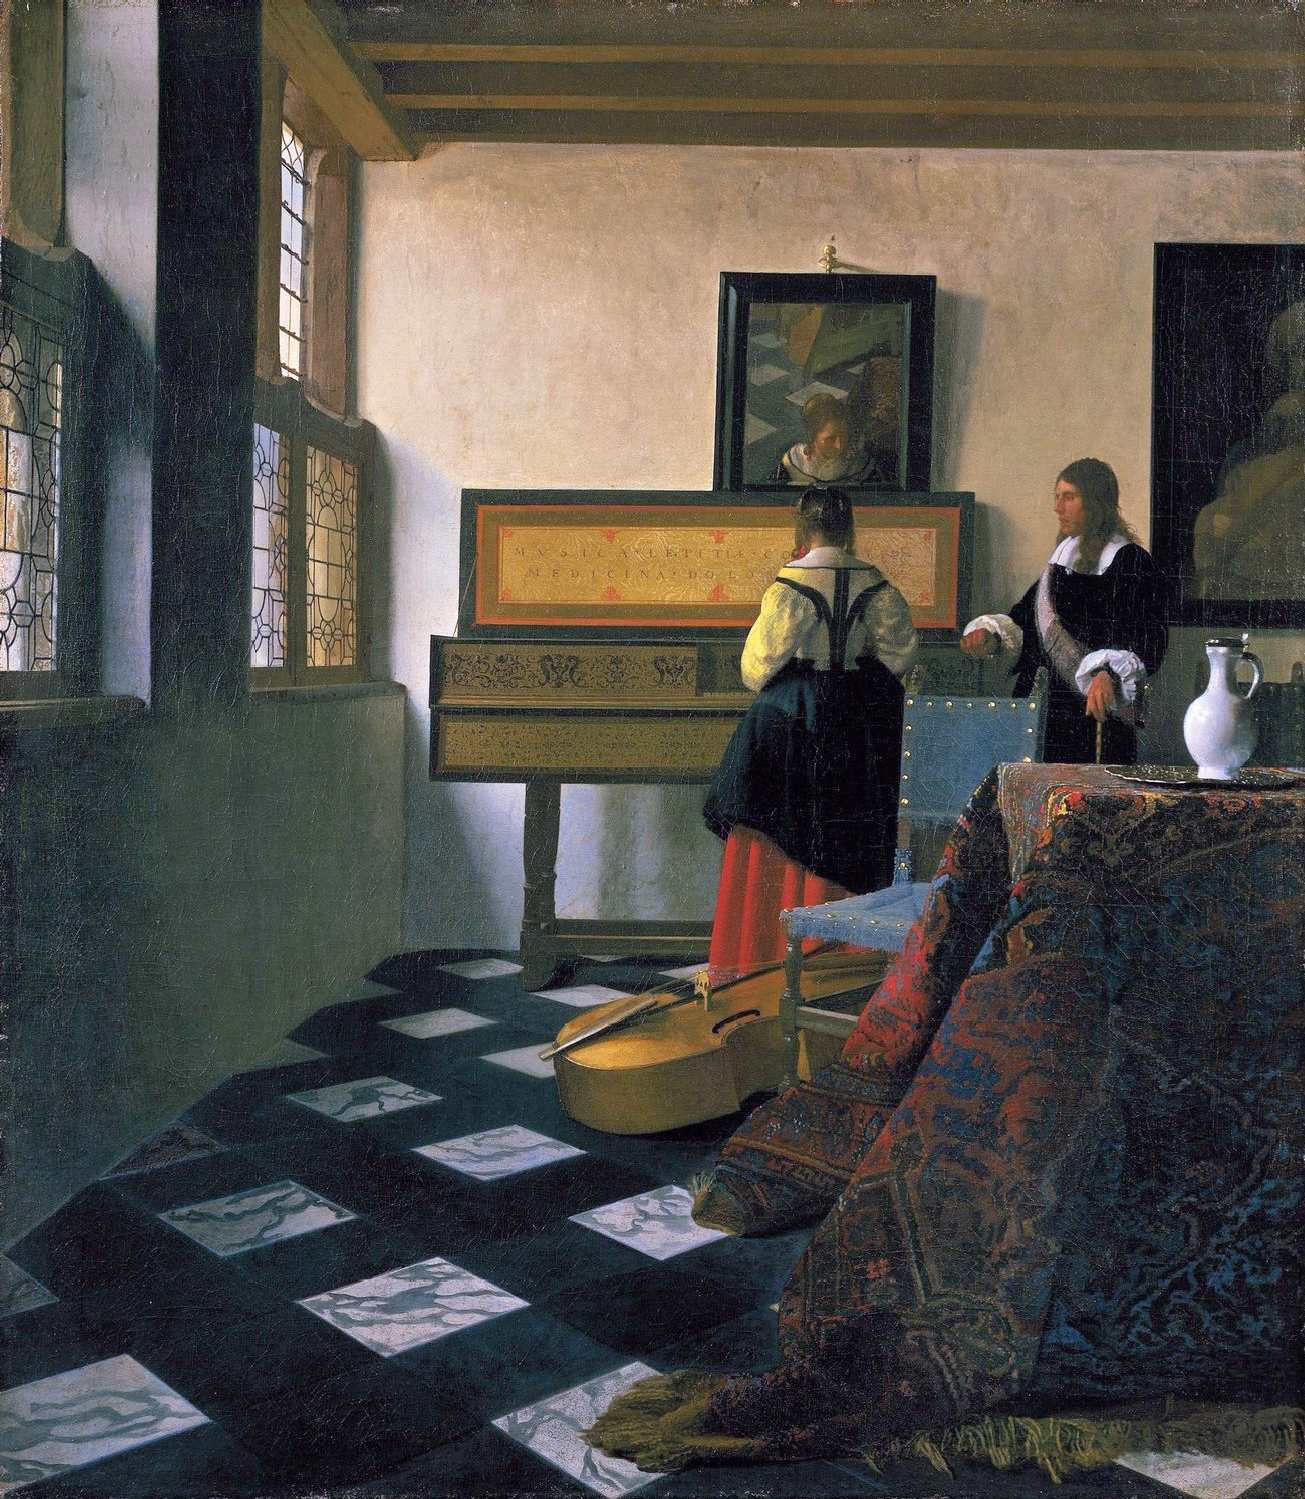 /800/600/https/upload.wikimedia.org/wikipedia/commons/4/49/Jan_Vermeer_van_Delft_014.jpg